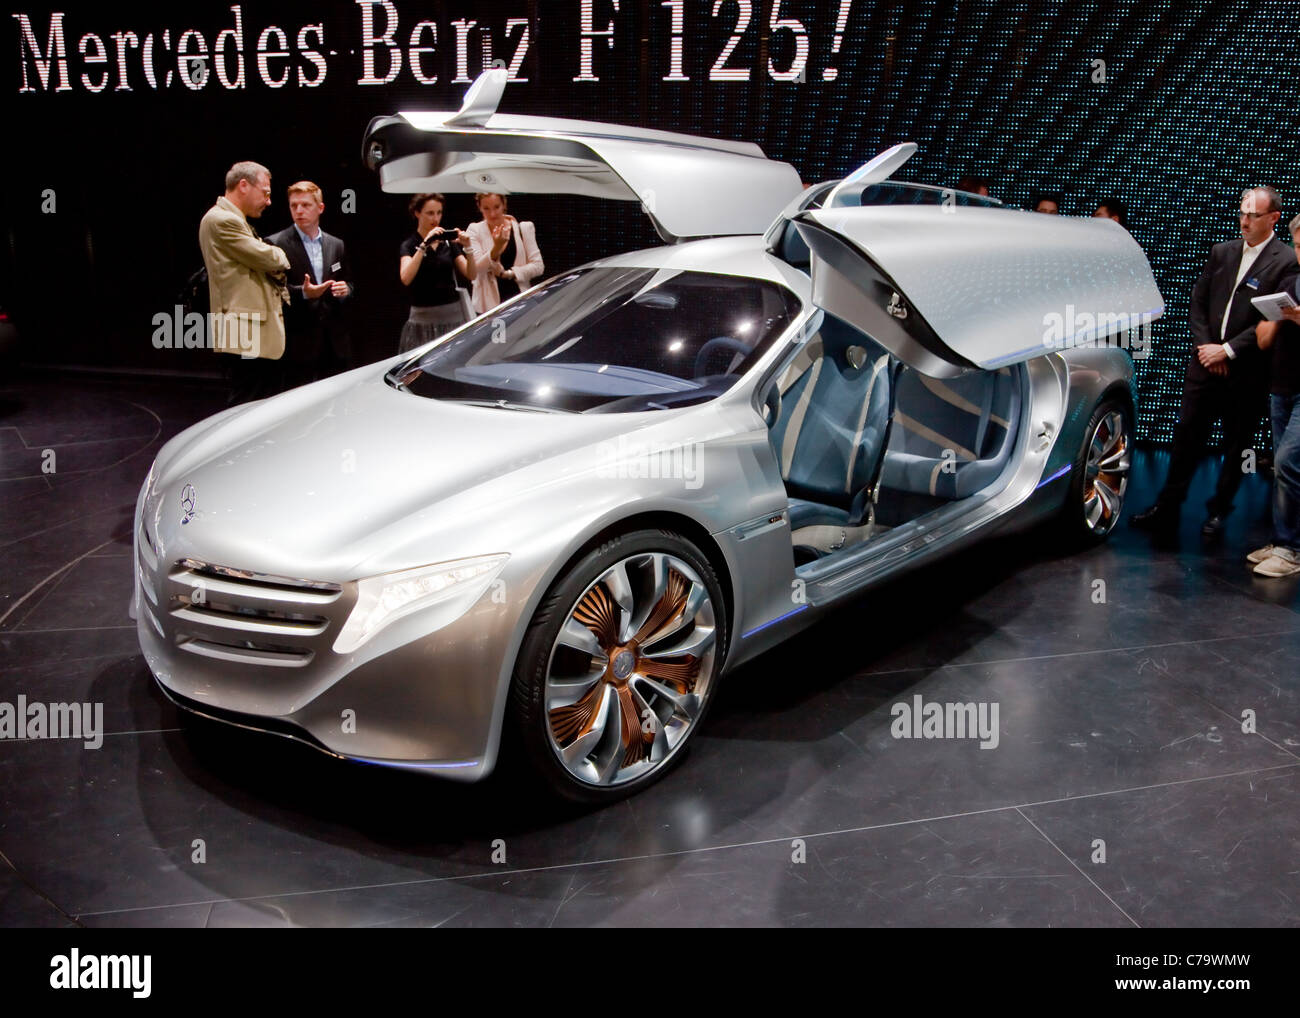 Nouveau Concept Car Mercedes Benz F125 sur l'IAA 2011 International Motor Show de Francfort, Allemagne Photo Stock